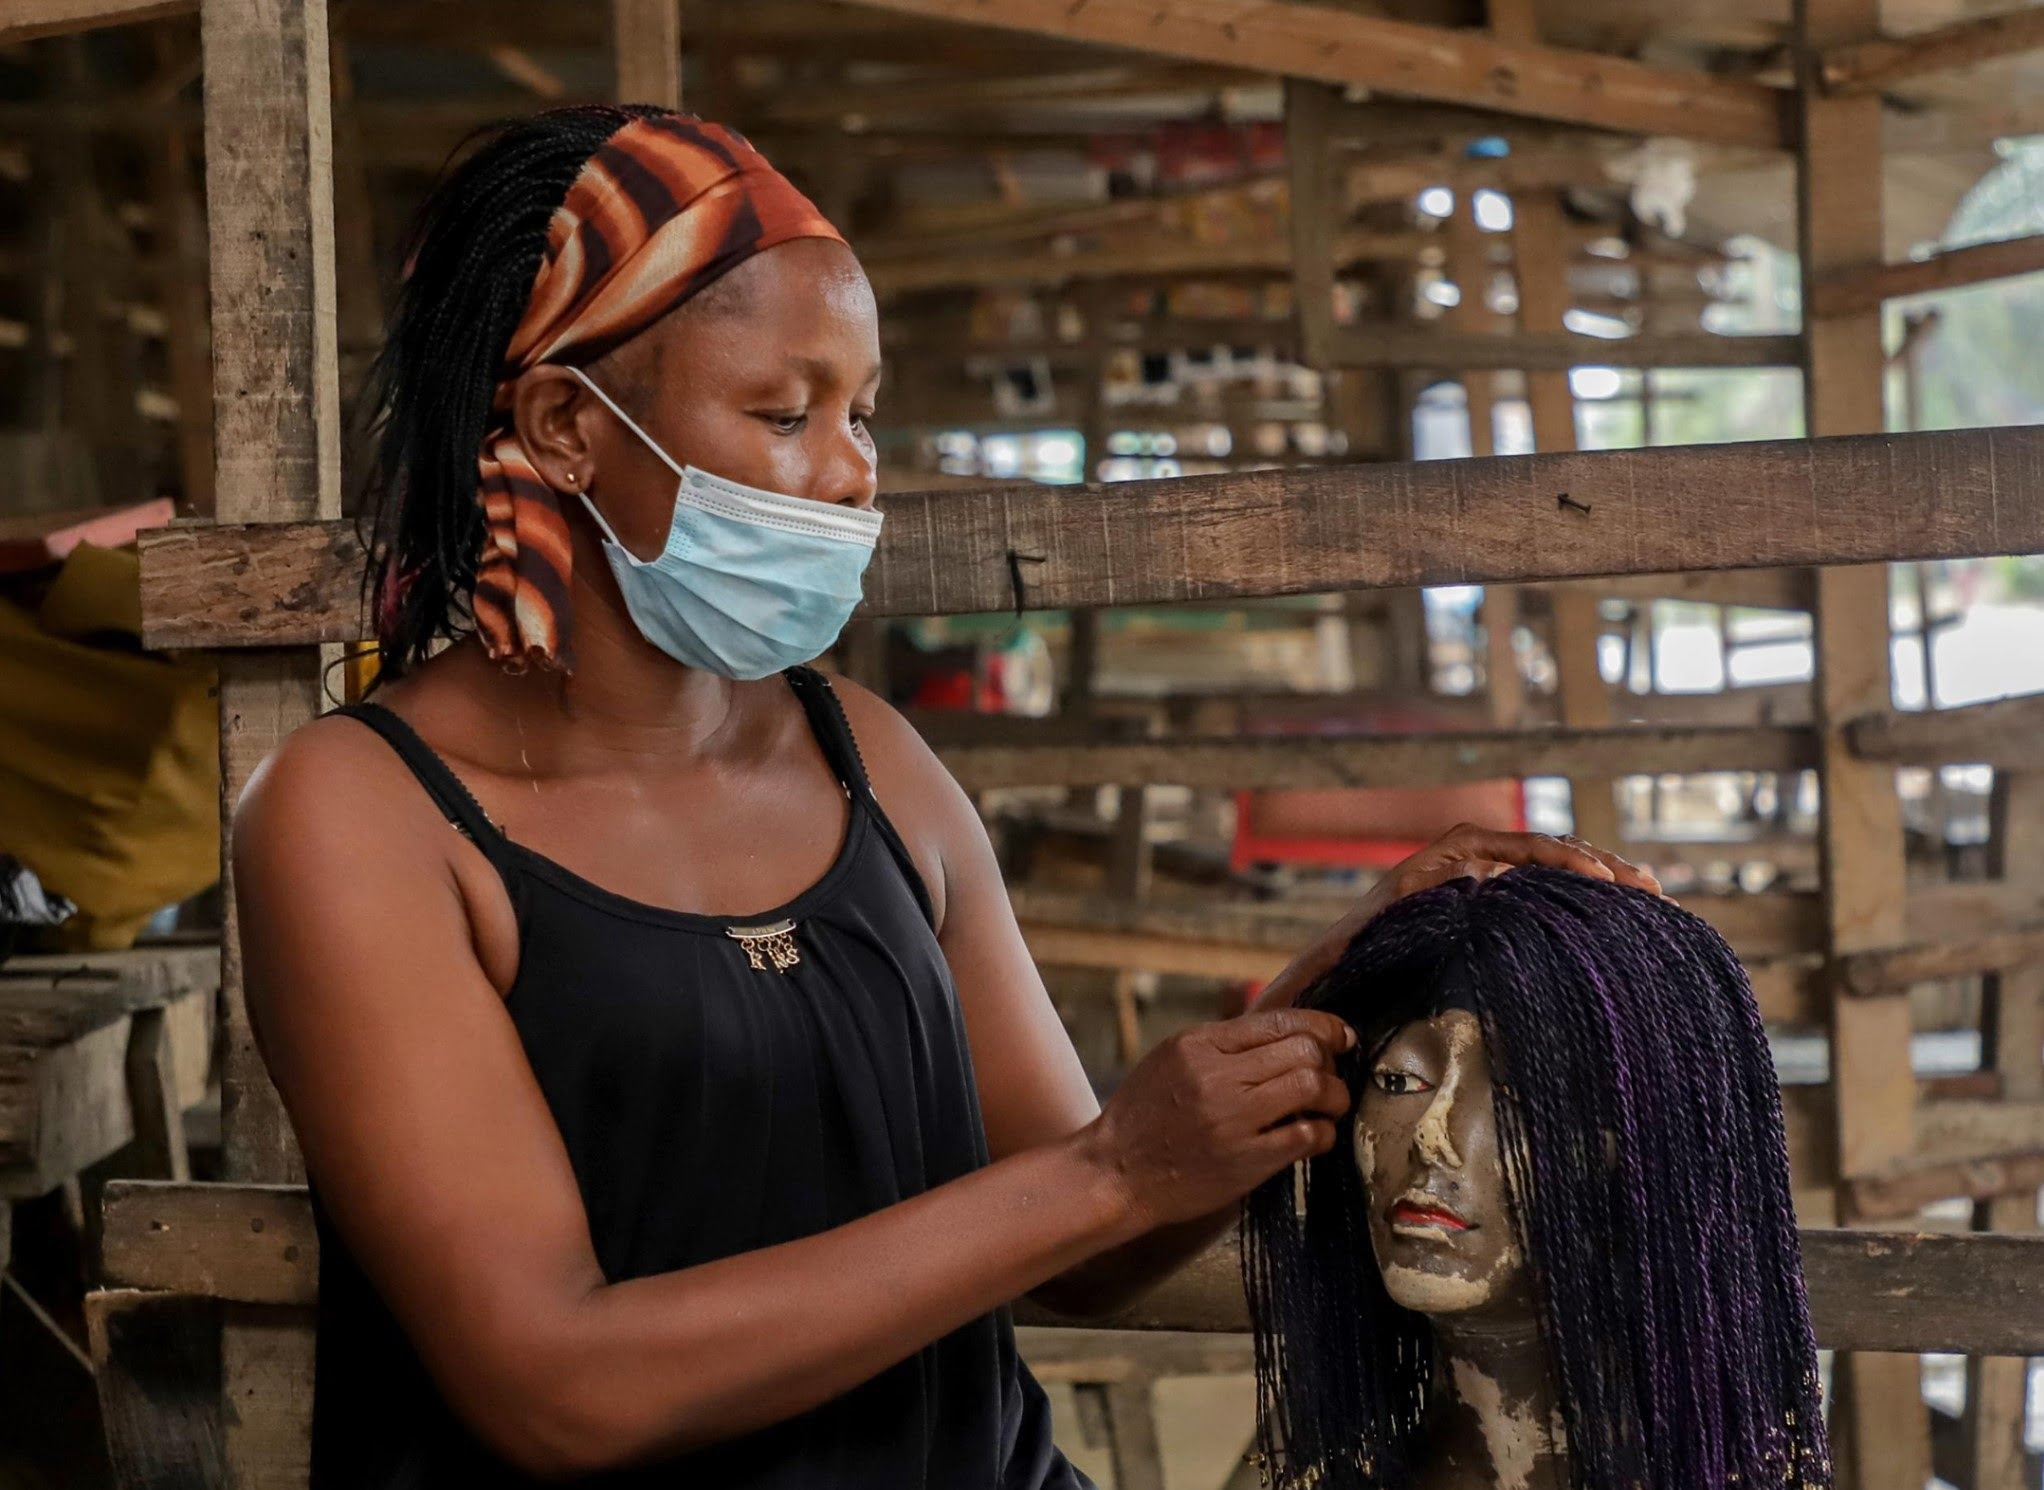 Female Garment Workers Disproportionately Impacted by the COVID-19 Pandemic